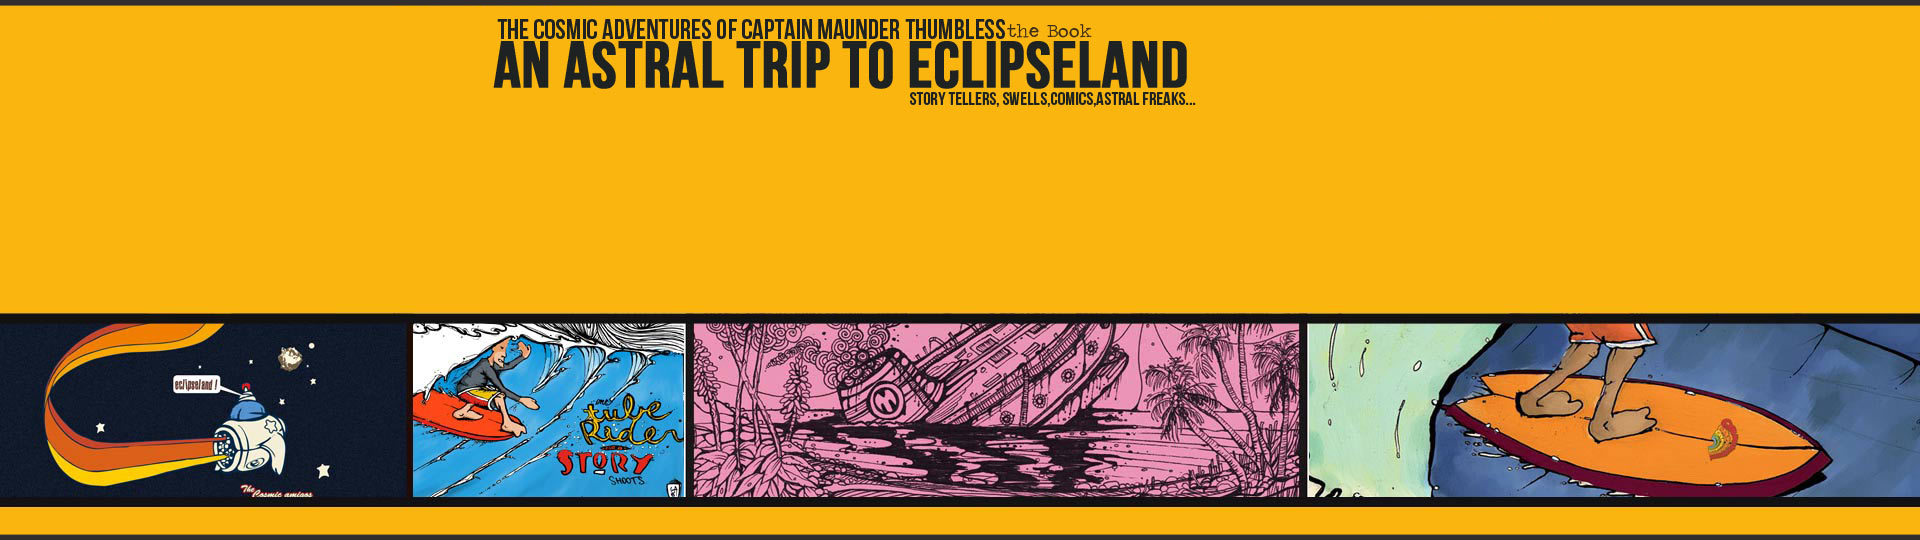 eclipseland_the_book